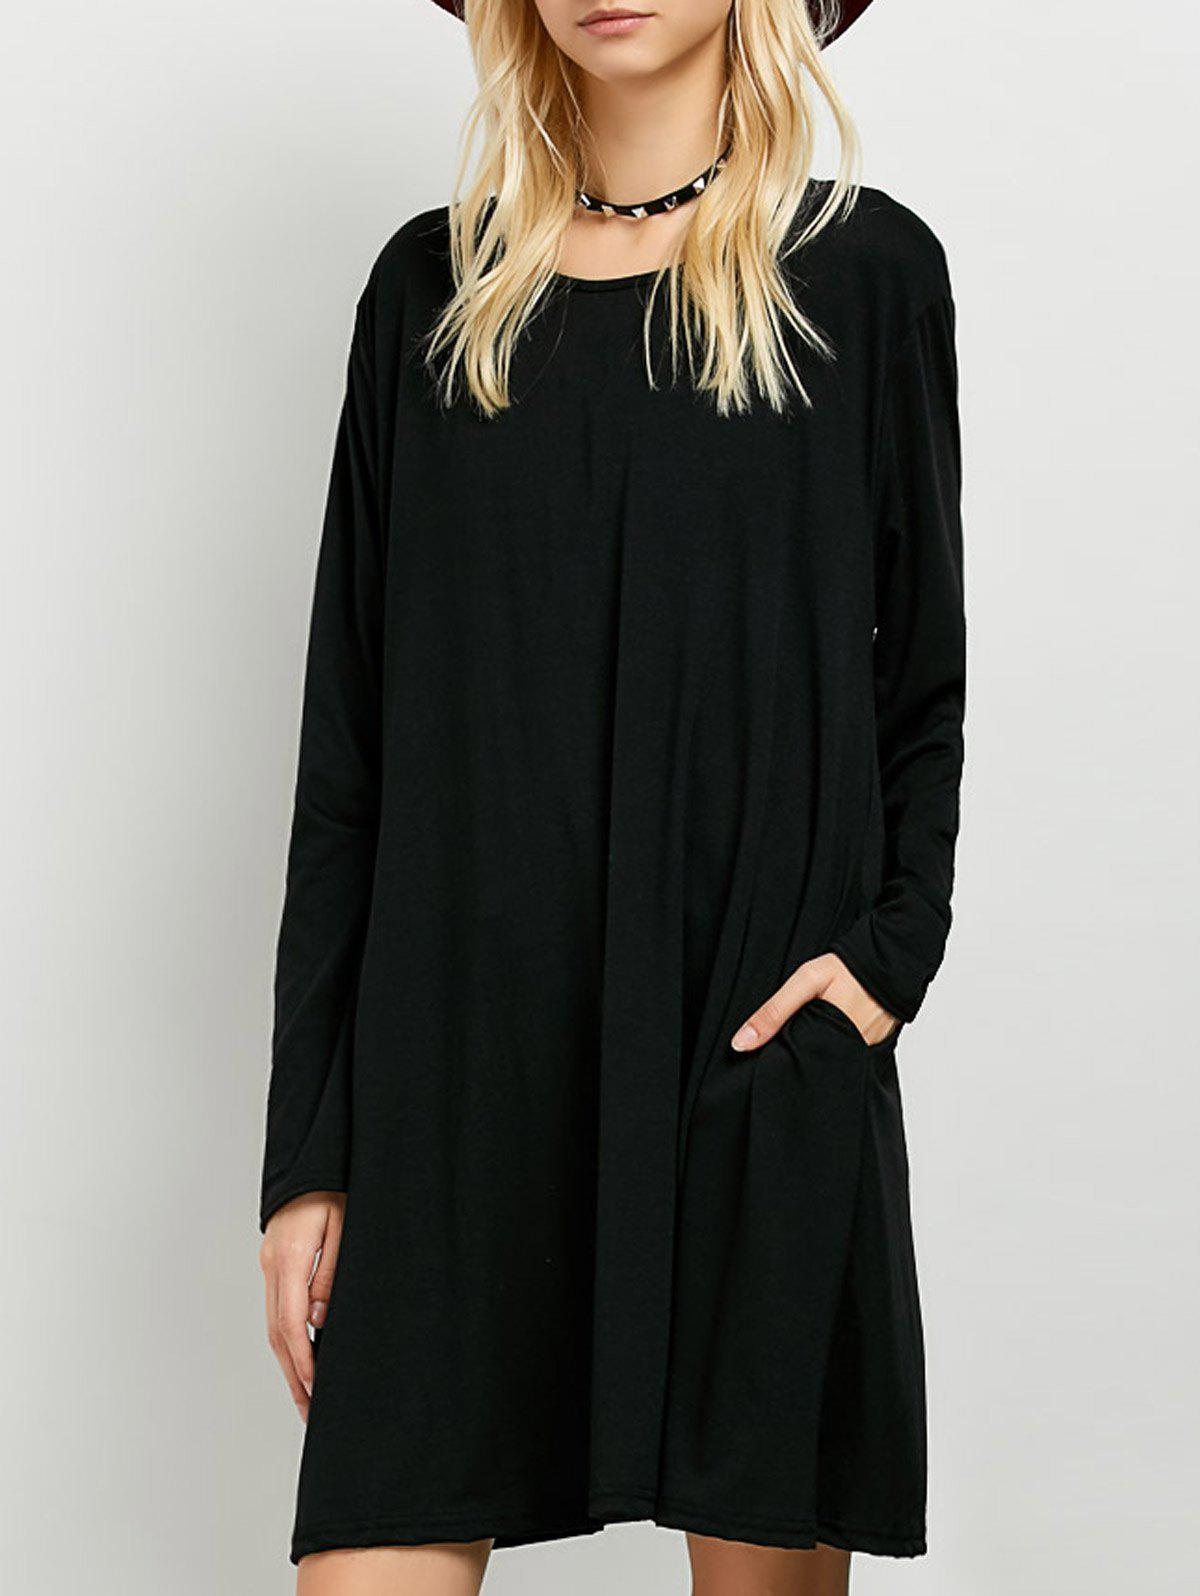 Fancy Long Sleeves Boyfriend Loose Fitting T-Shirt Dress